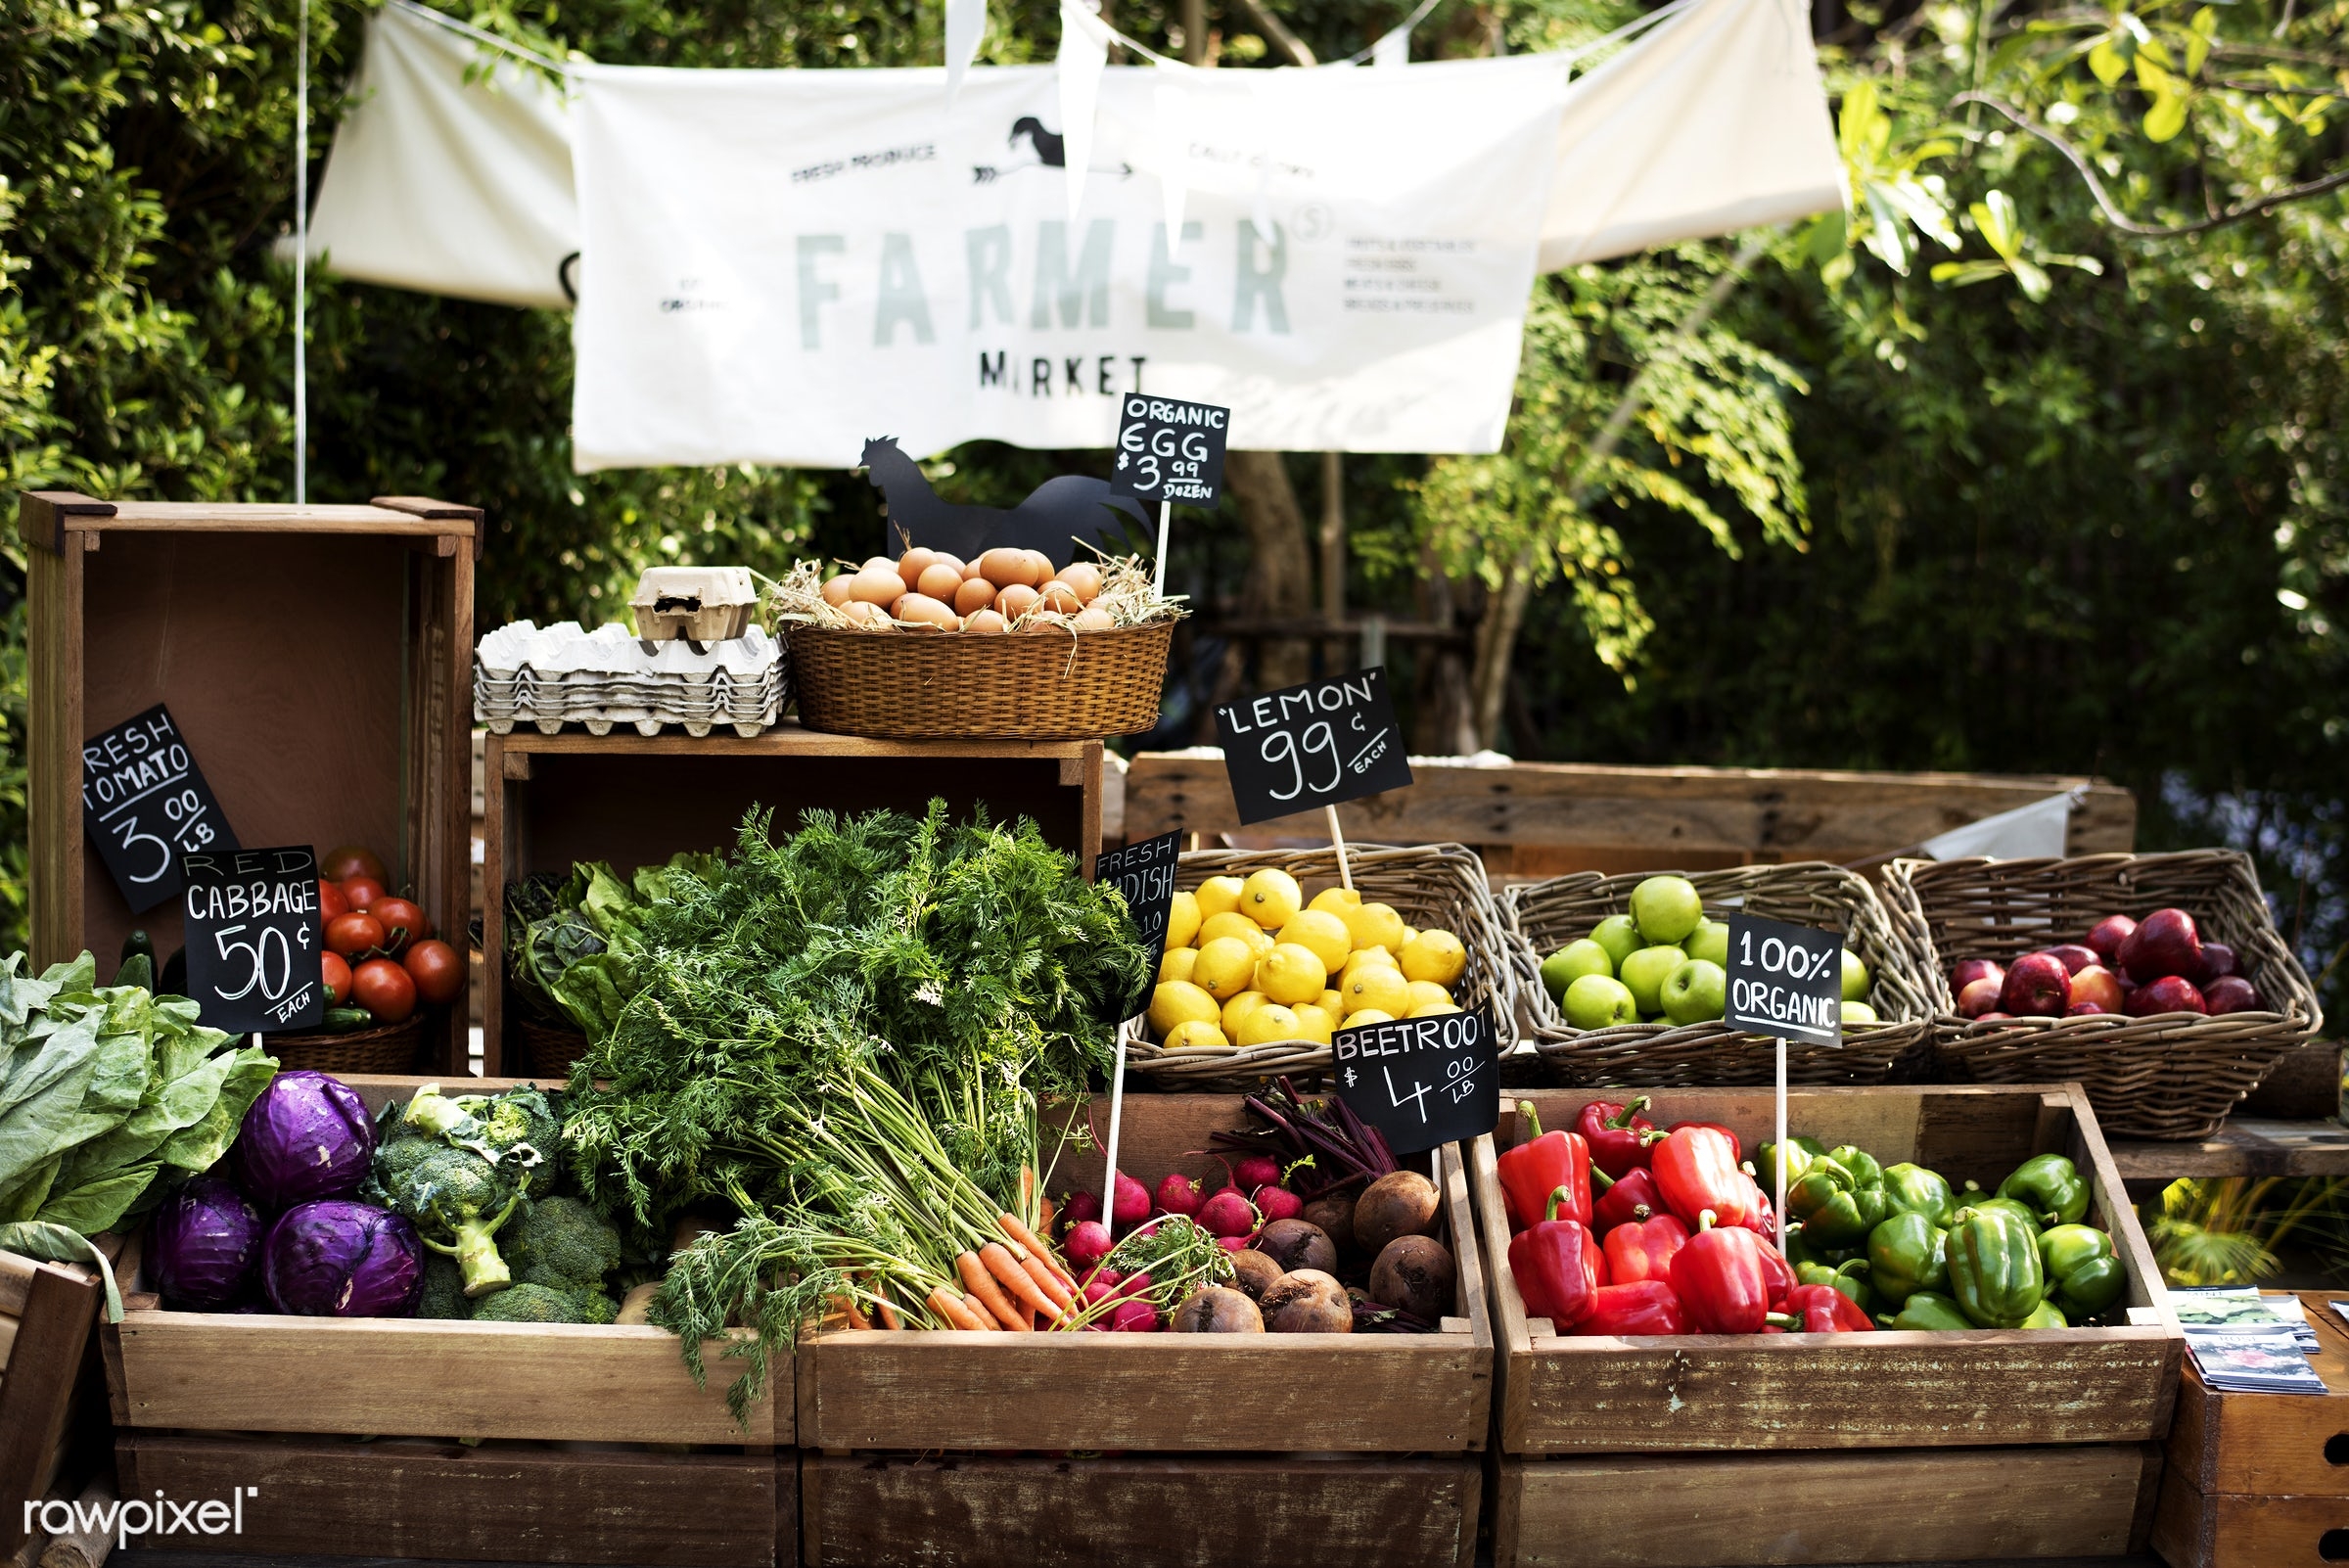 shop, stall, consumer, business, farm, farmer, fresh, sell, bell peppers, broccoli, apples, products, consumerism, green,...